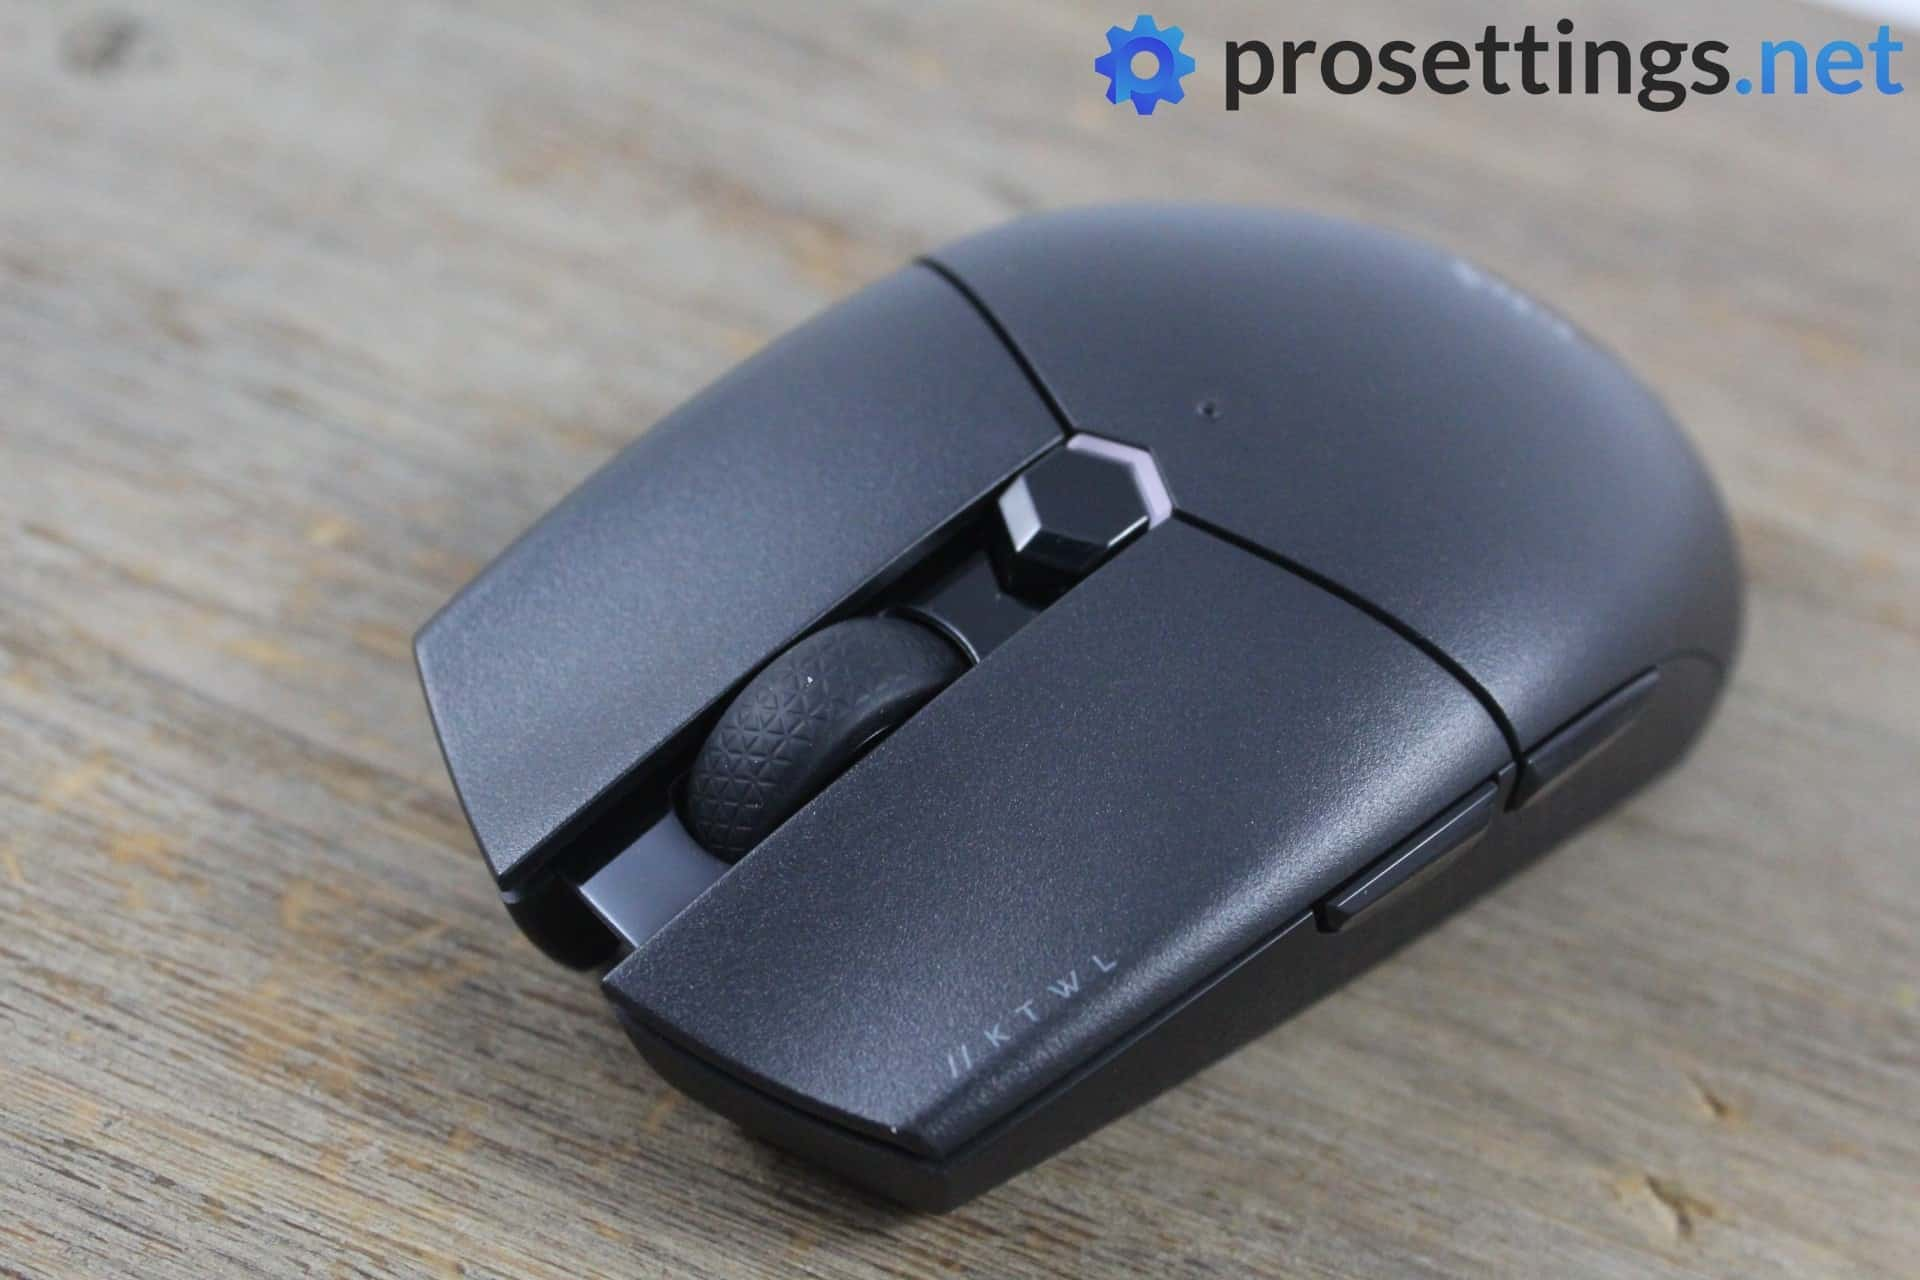 Corsair Katar Pro Wireless Review First Impressions